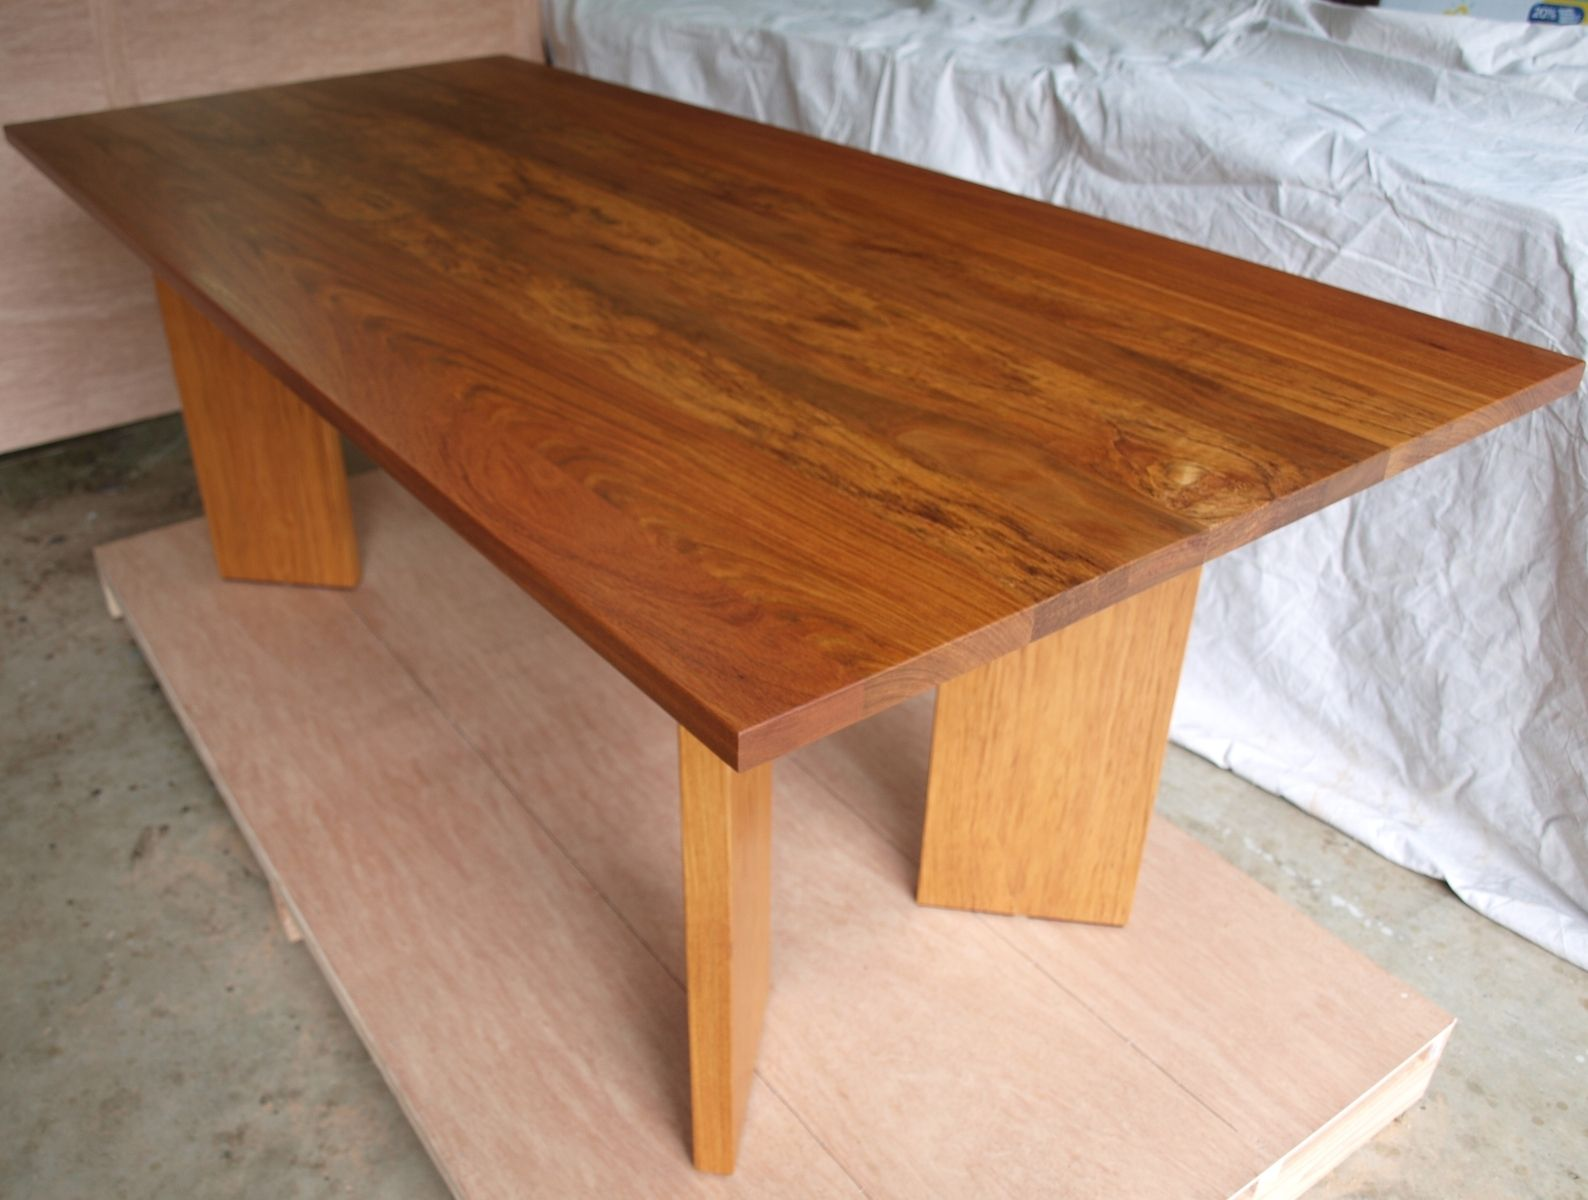 hand made dining room table by witness tree studios handmade rustic farmhouse dining room table by geoffs